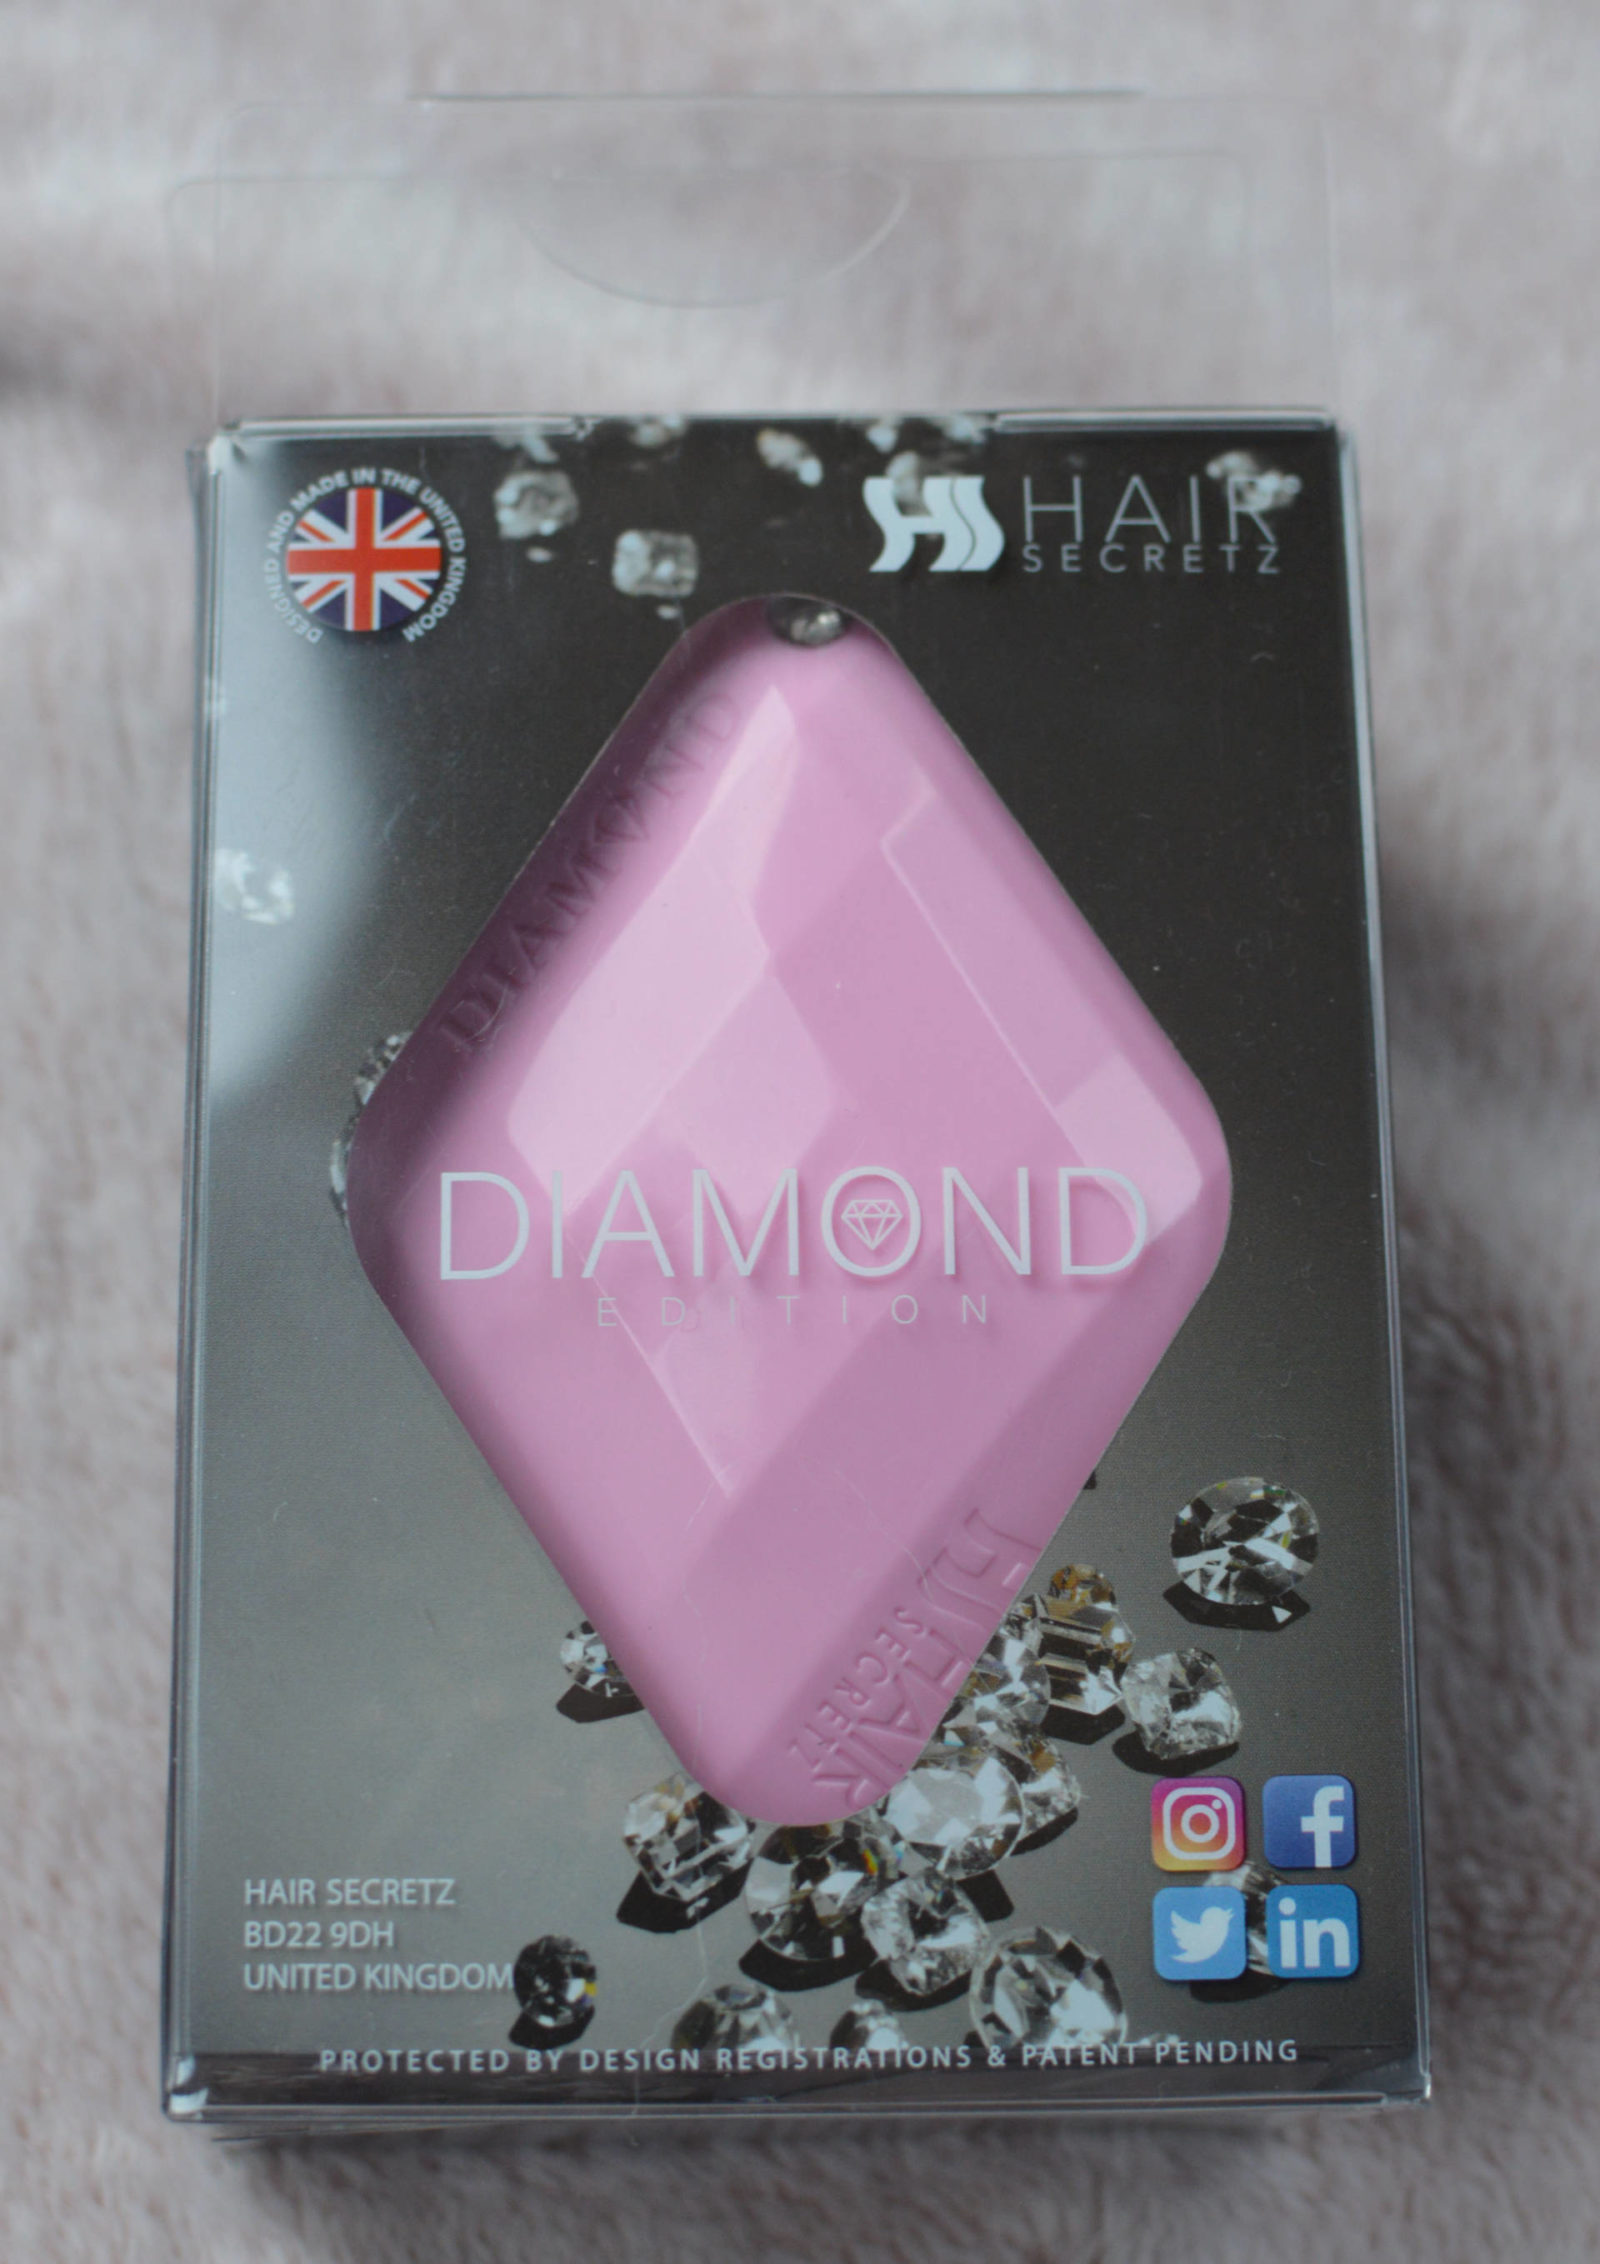 Hair Podz Diamond Brush